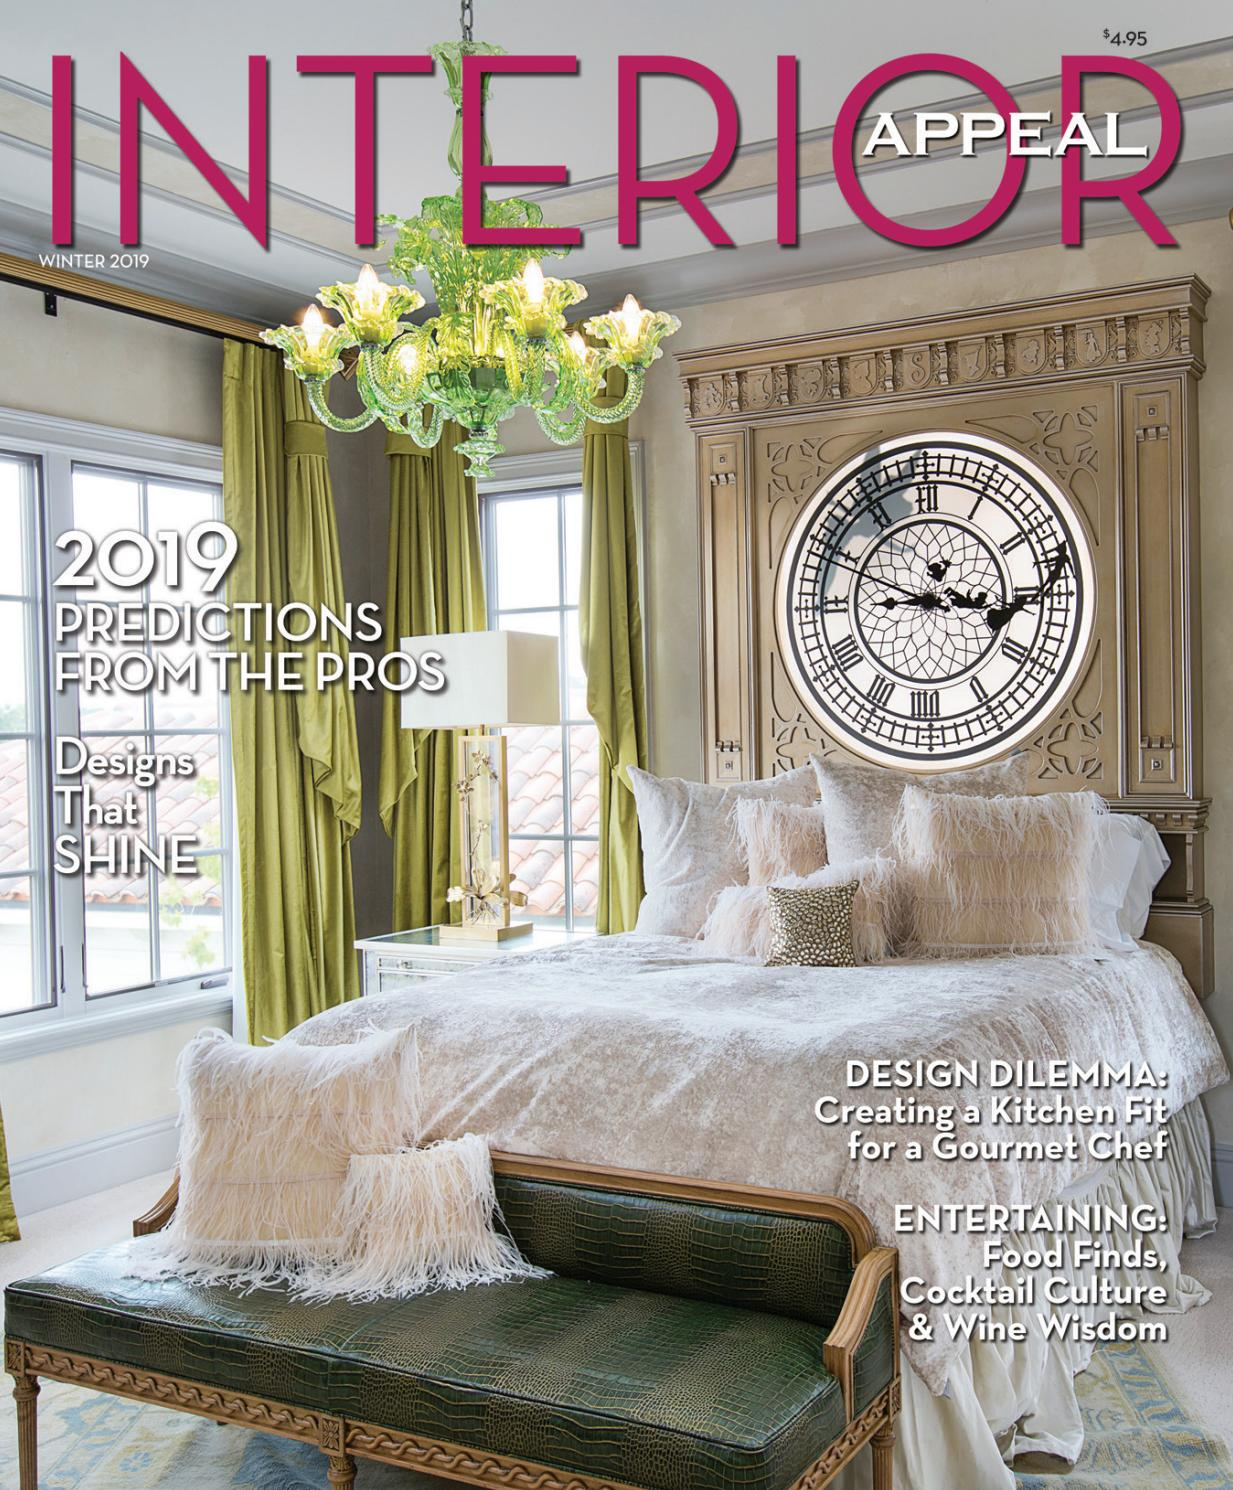 Interior Appeal Winter 19 By Orange Appeal Issuu